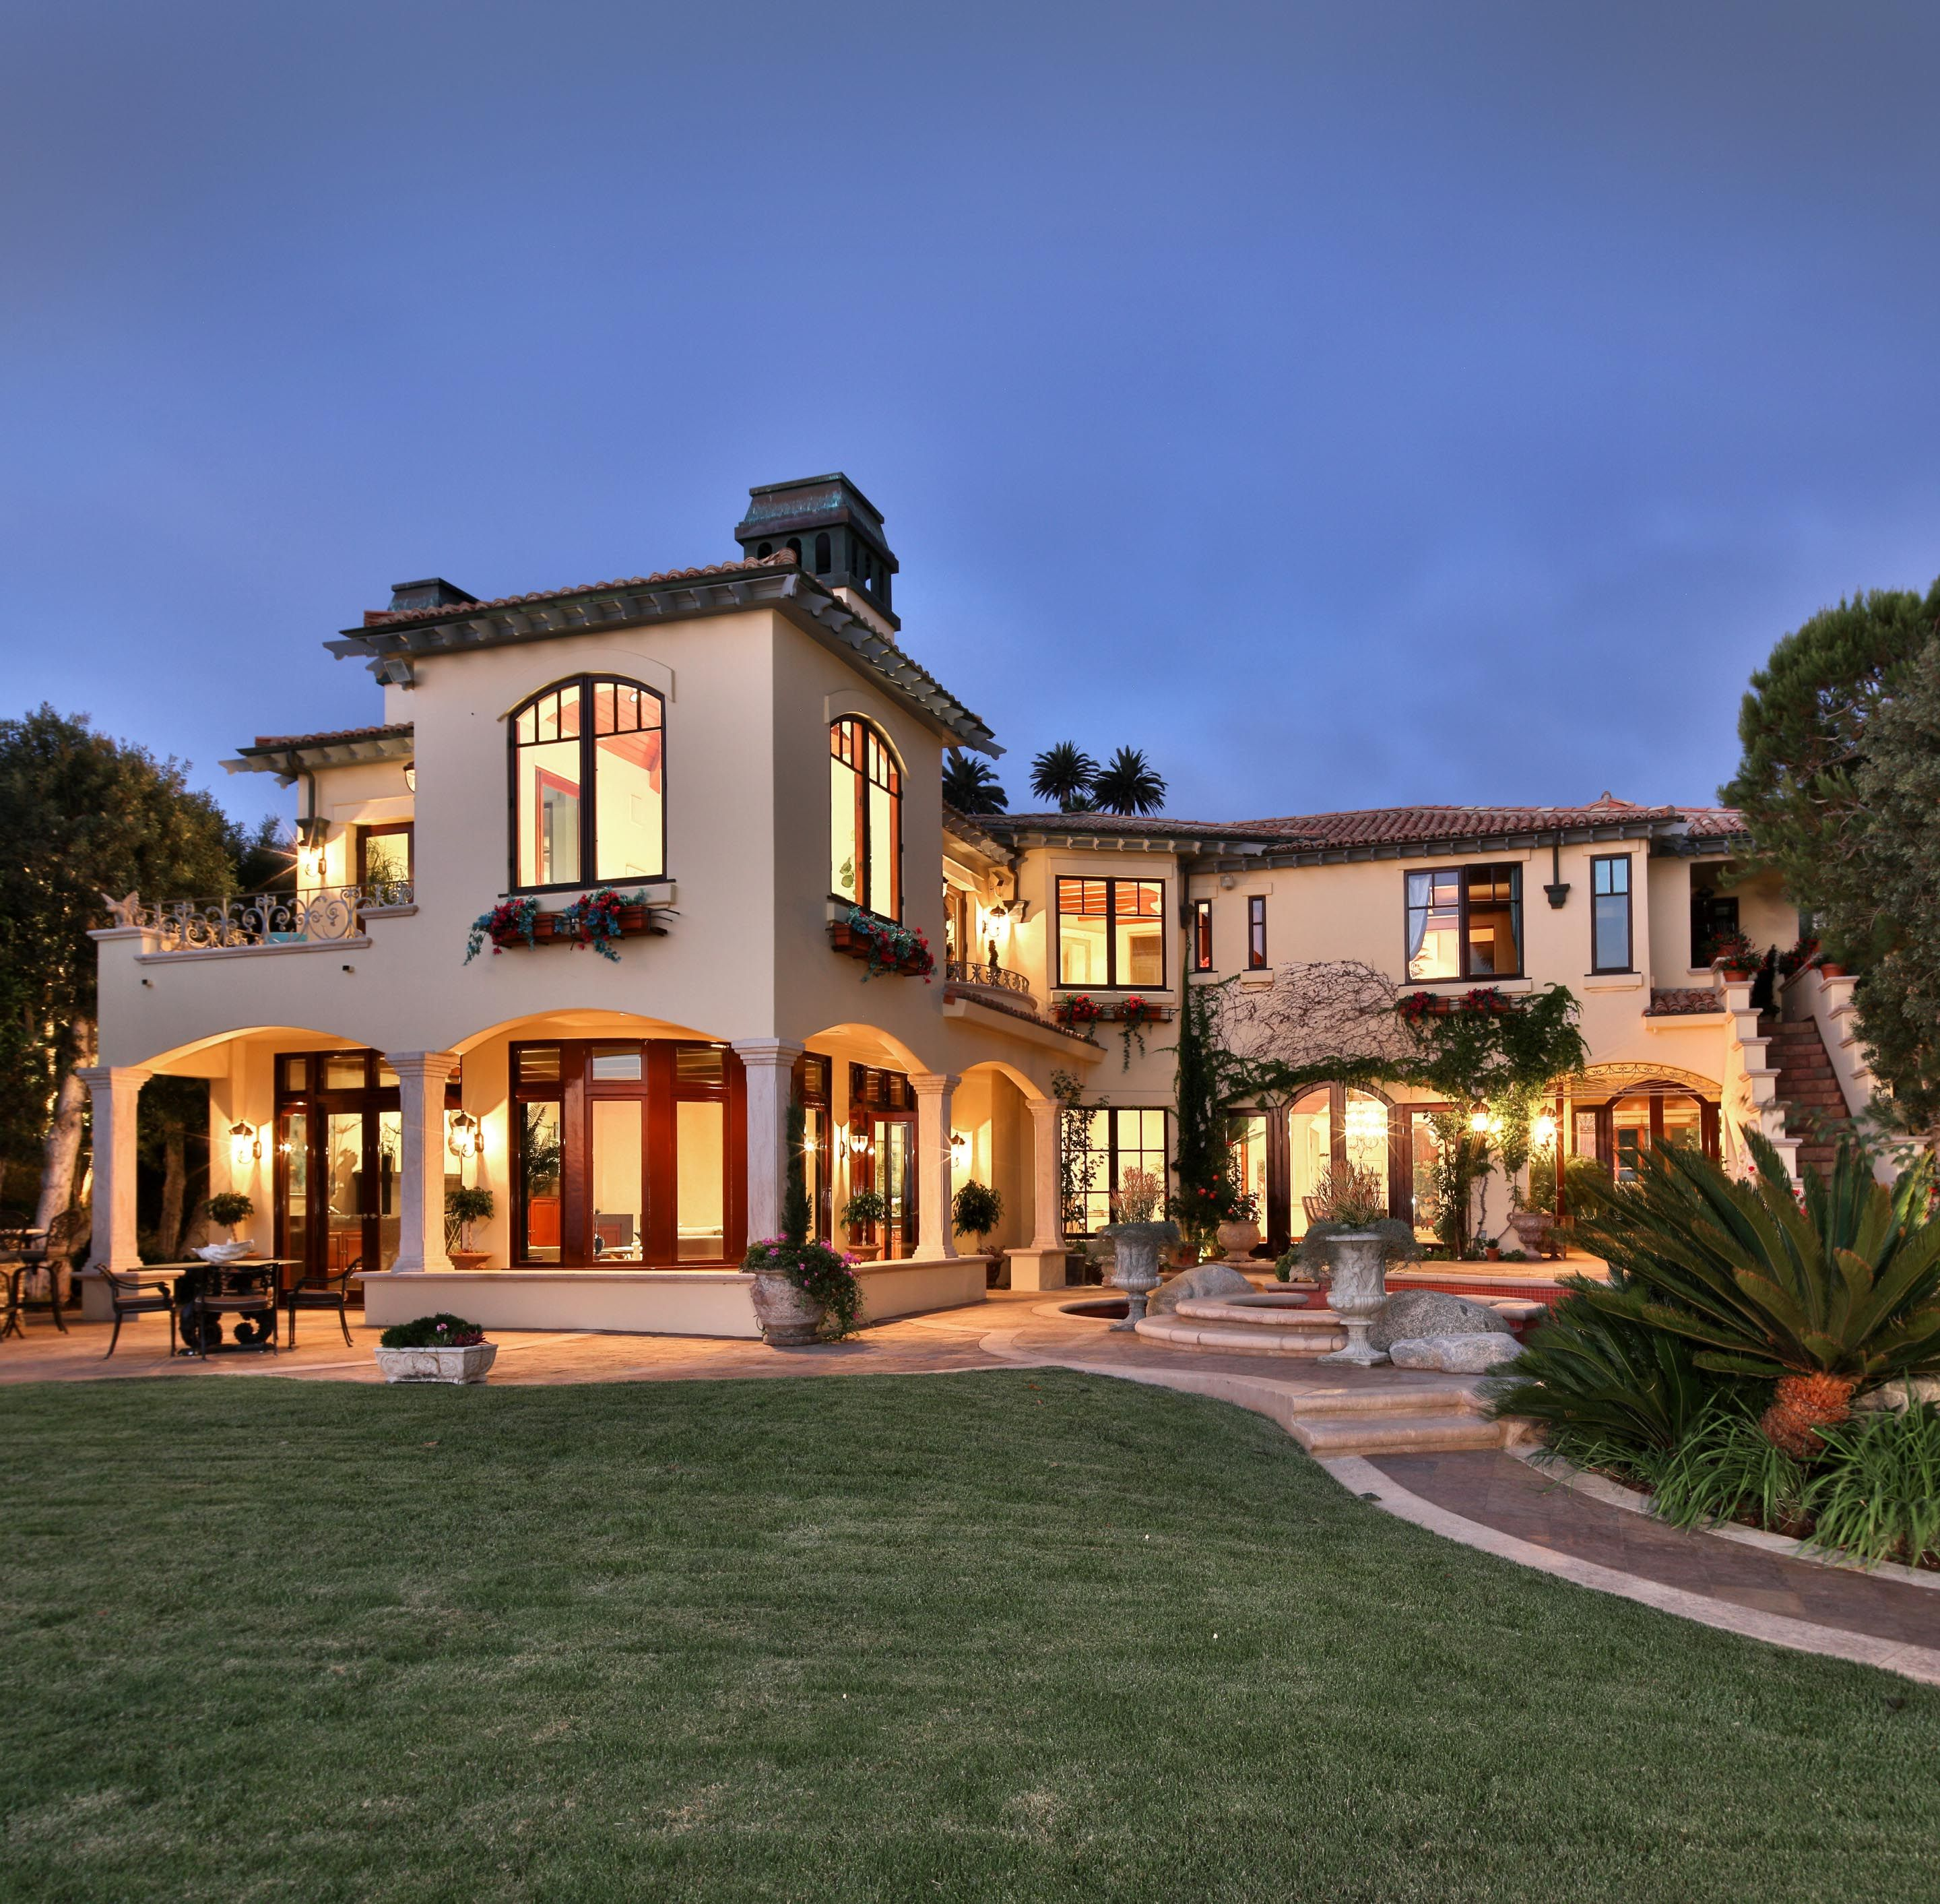 Luxury Spanish Villa Home Exterior Italian Homes Exterior Italian Style Home Spanish Style Homes